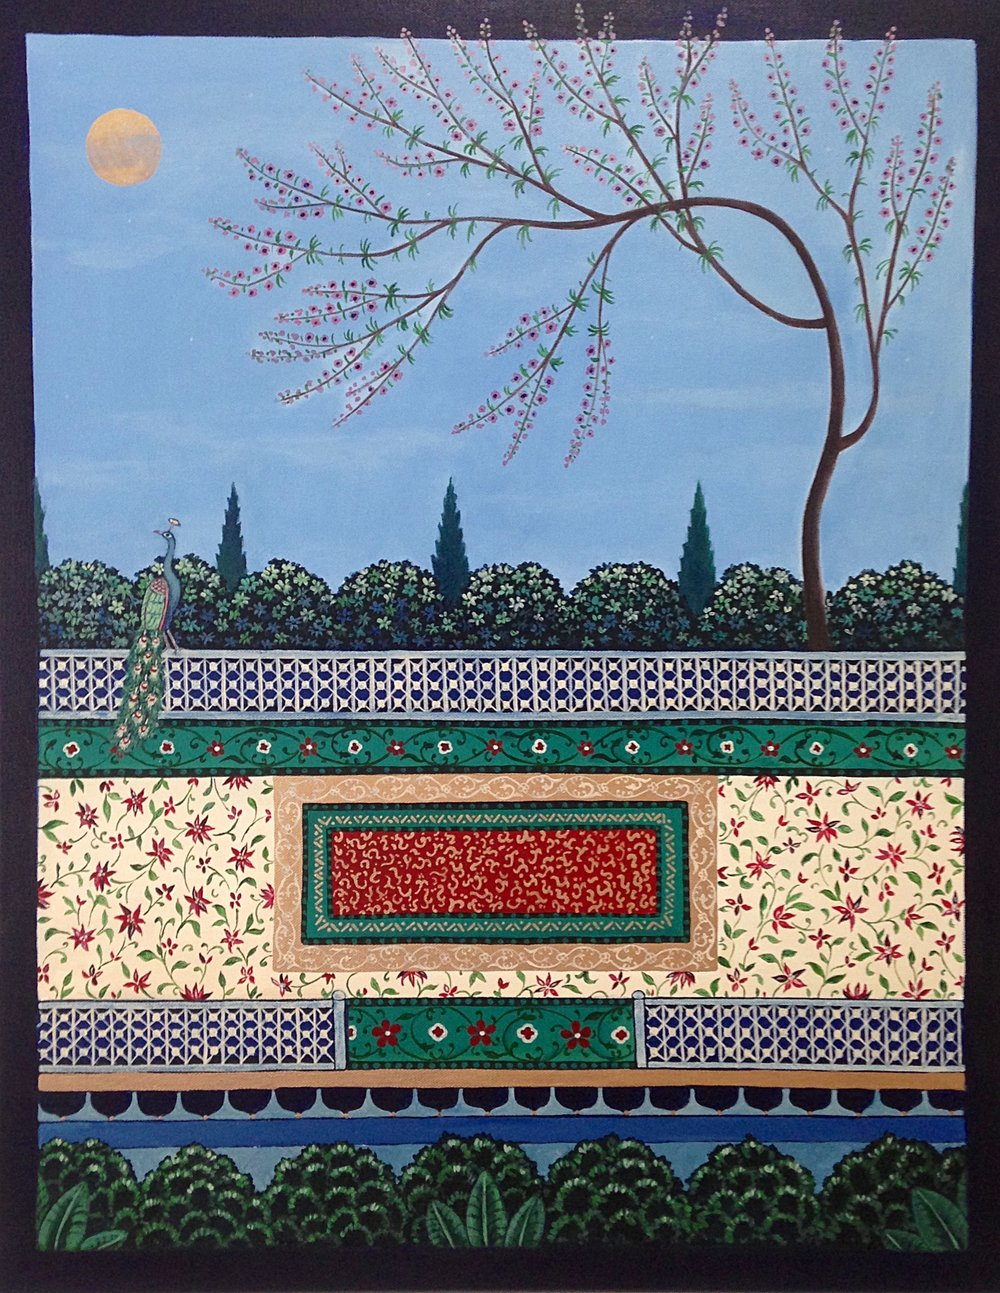 golden moon garden, 22''x28'', acrylic on canvas, 2016